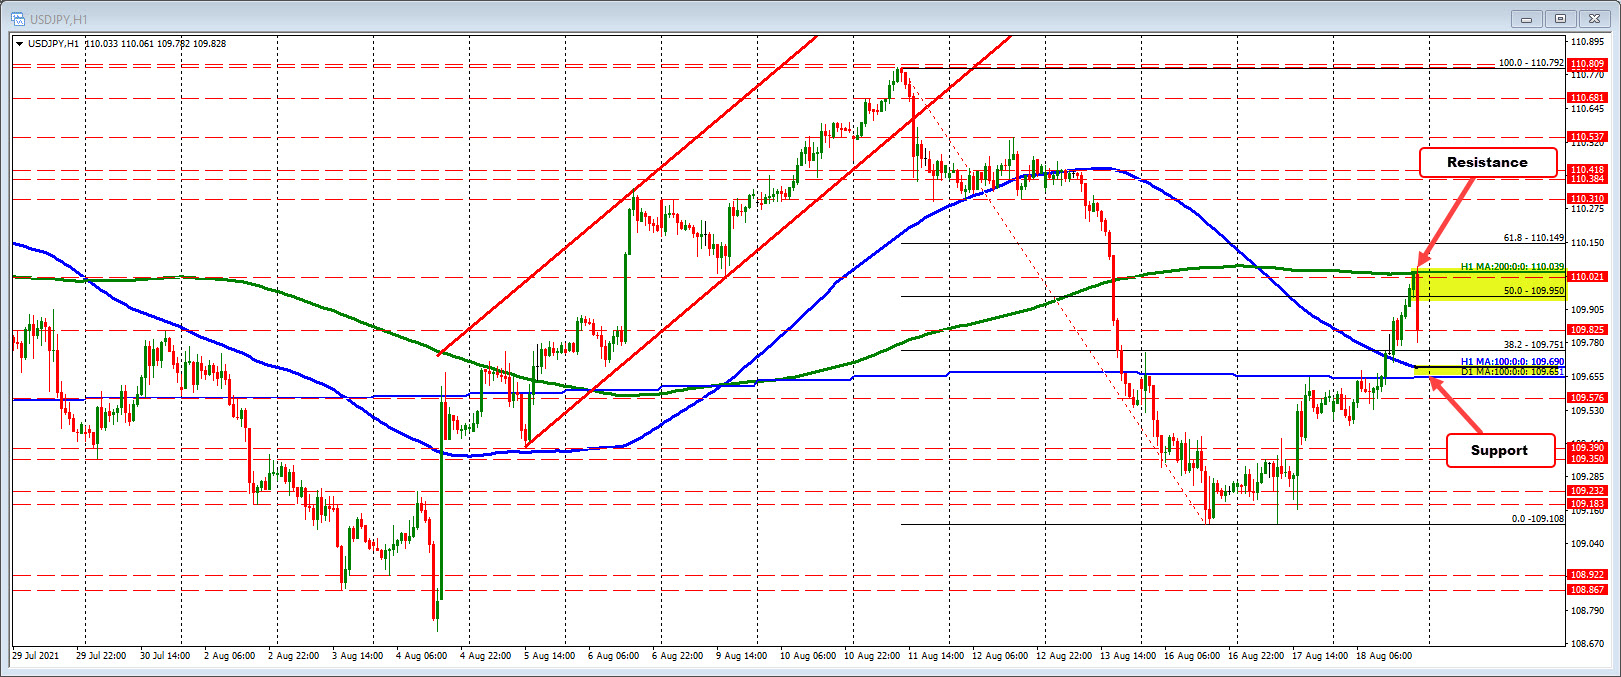 USJDPY on the daily chart